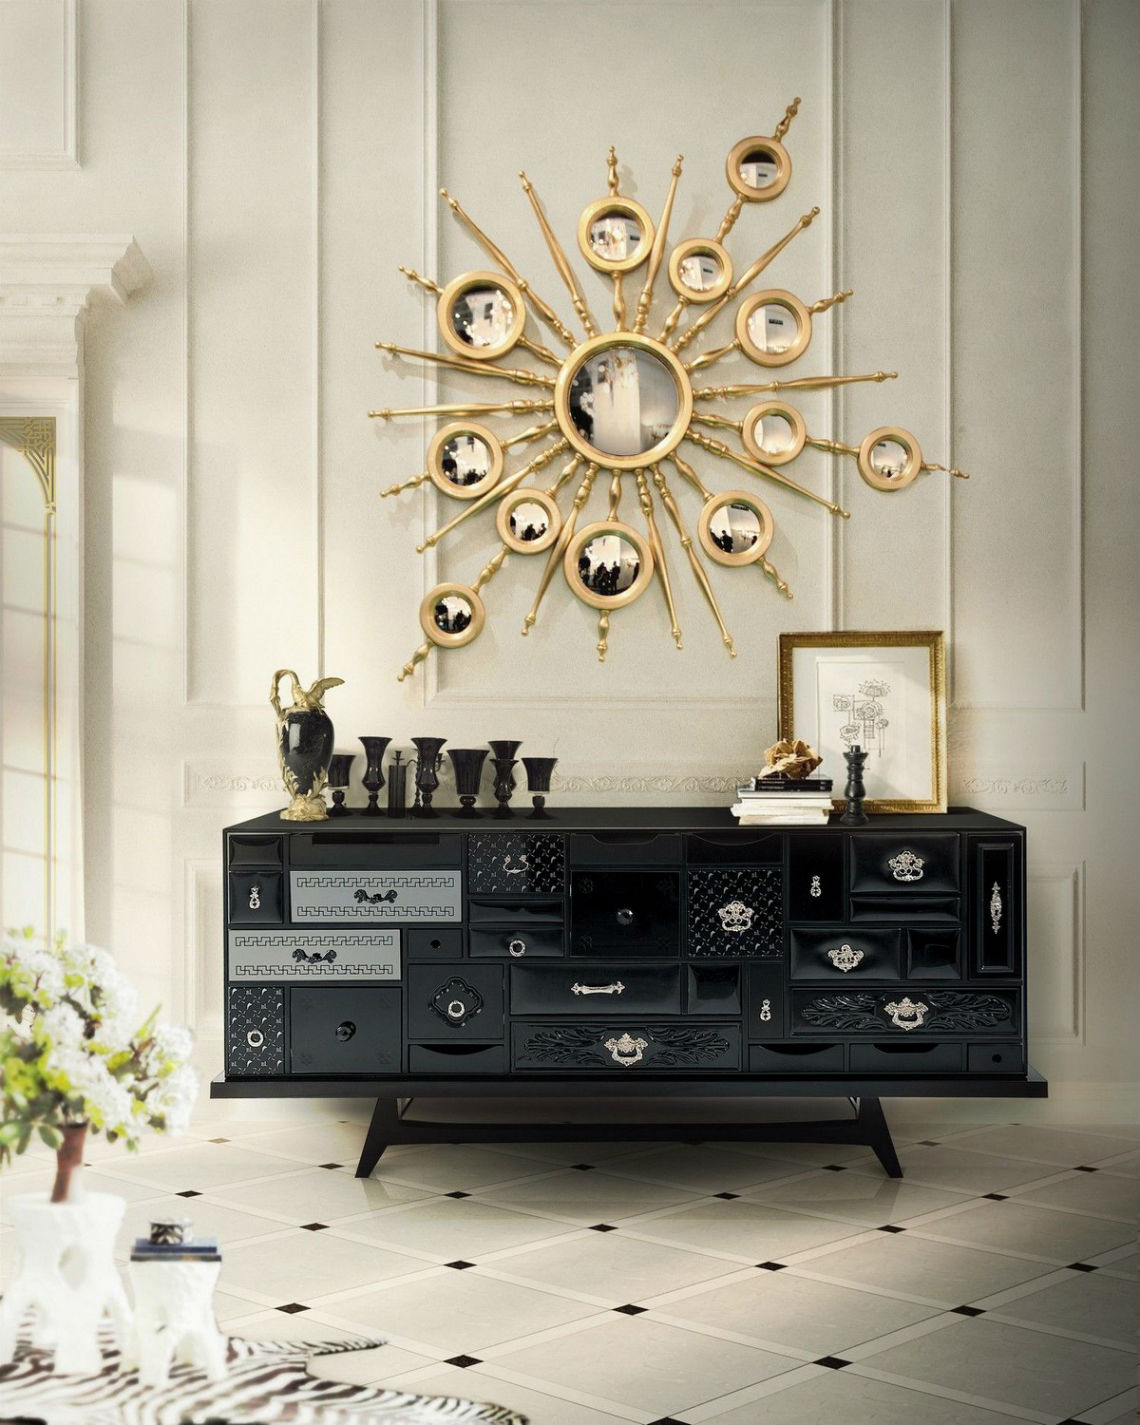 Modern Mirrors To Match Your Living Room Sideboard modern mirrors Modern Mirrors To Match Your Living Room Sideboard 8 4